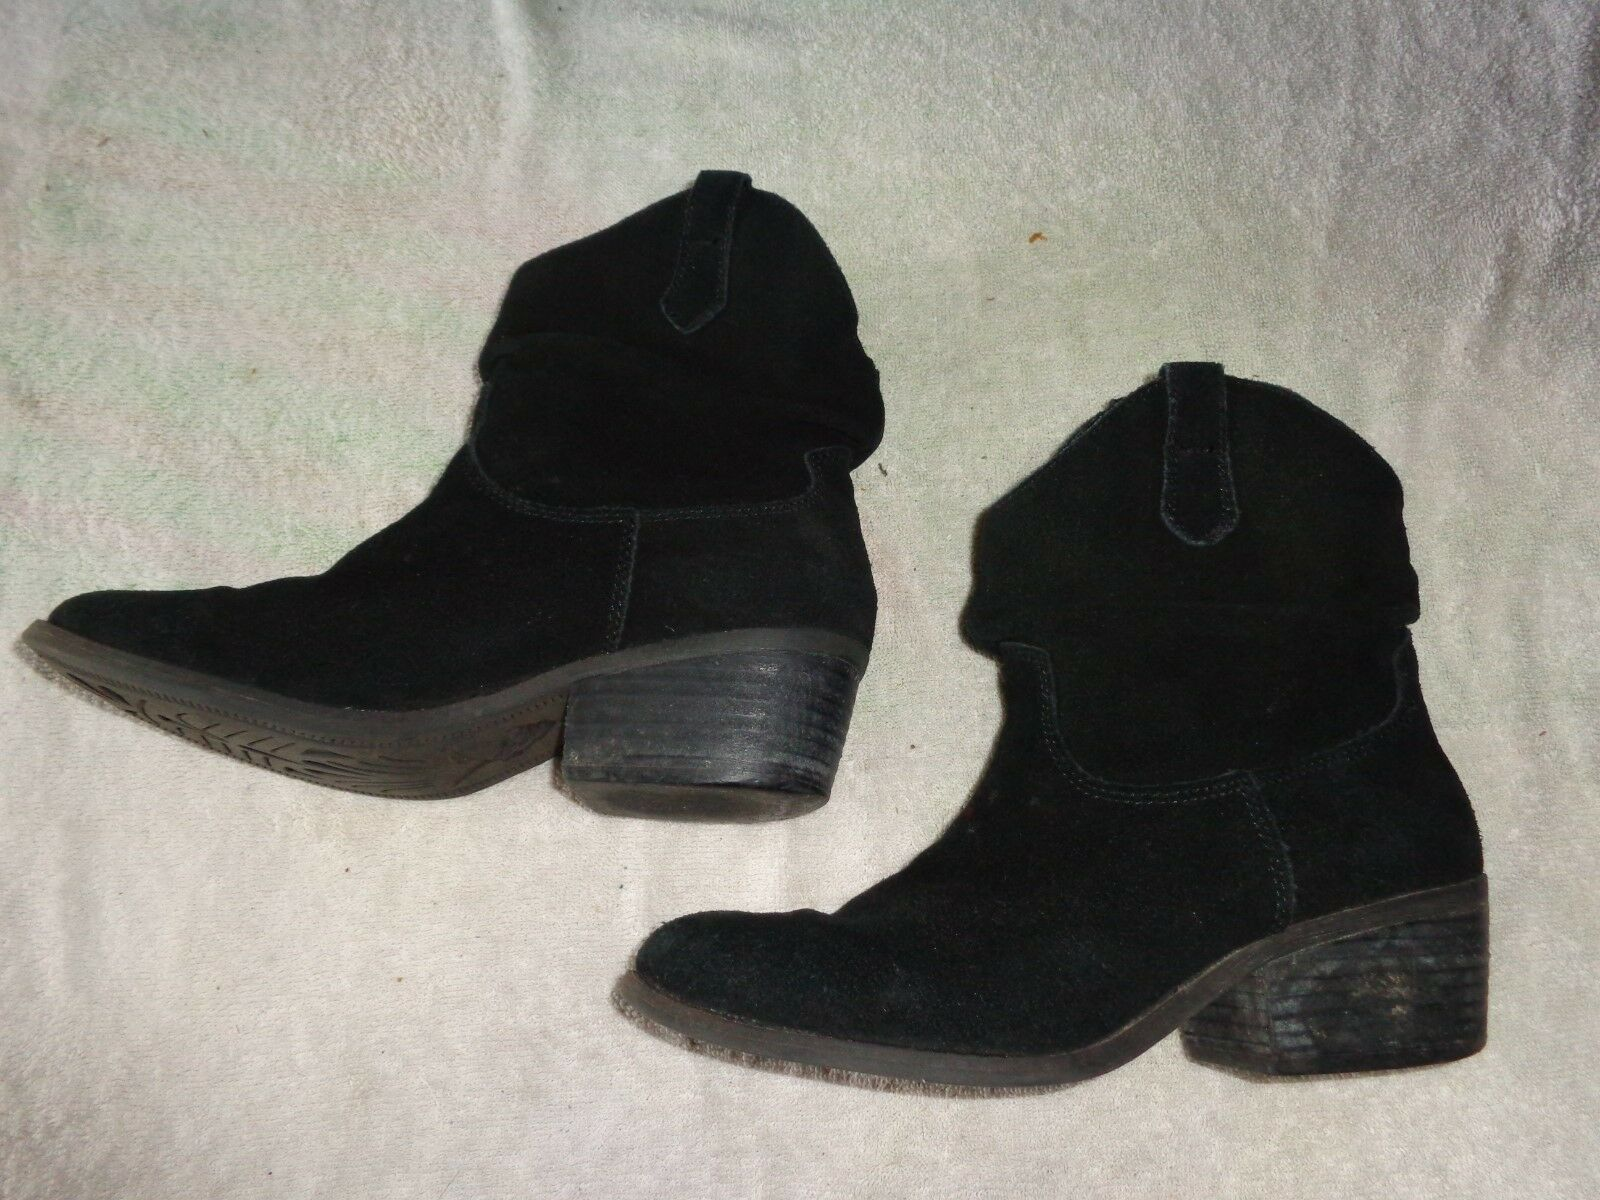 WHITE MOUNTAIN WESTERN BLACK BOOTS WOMENS SIZE 7 1/2 M